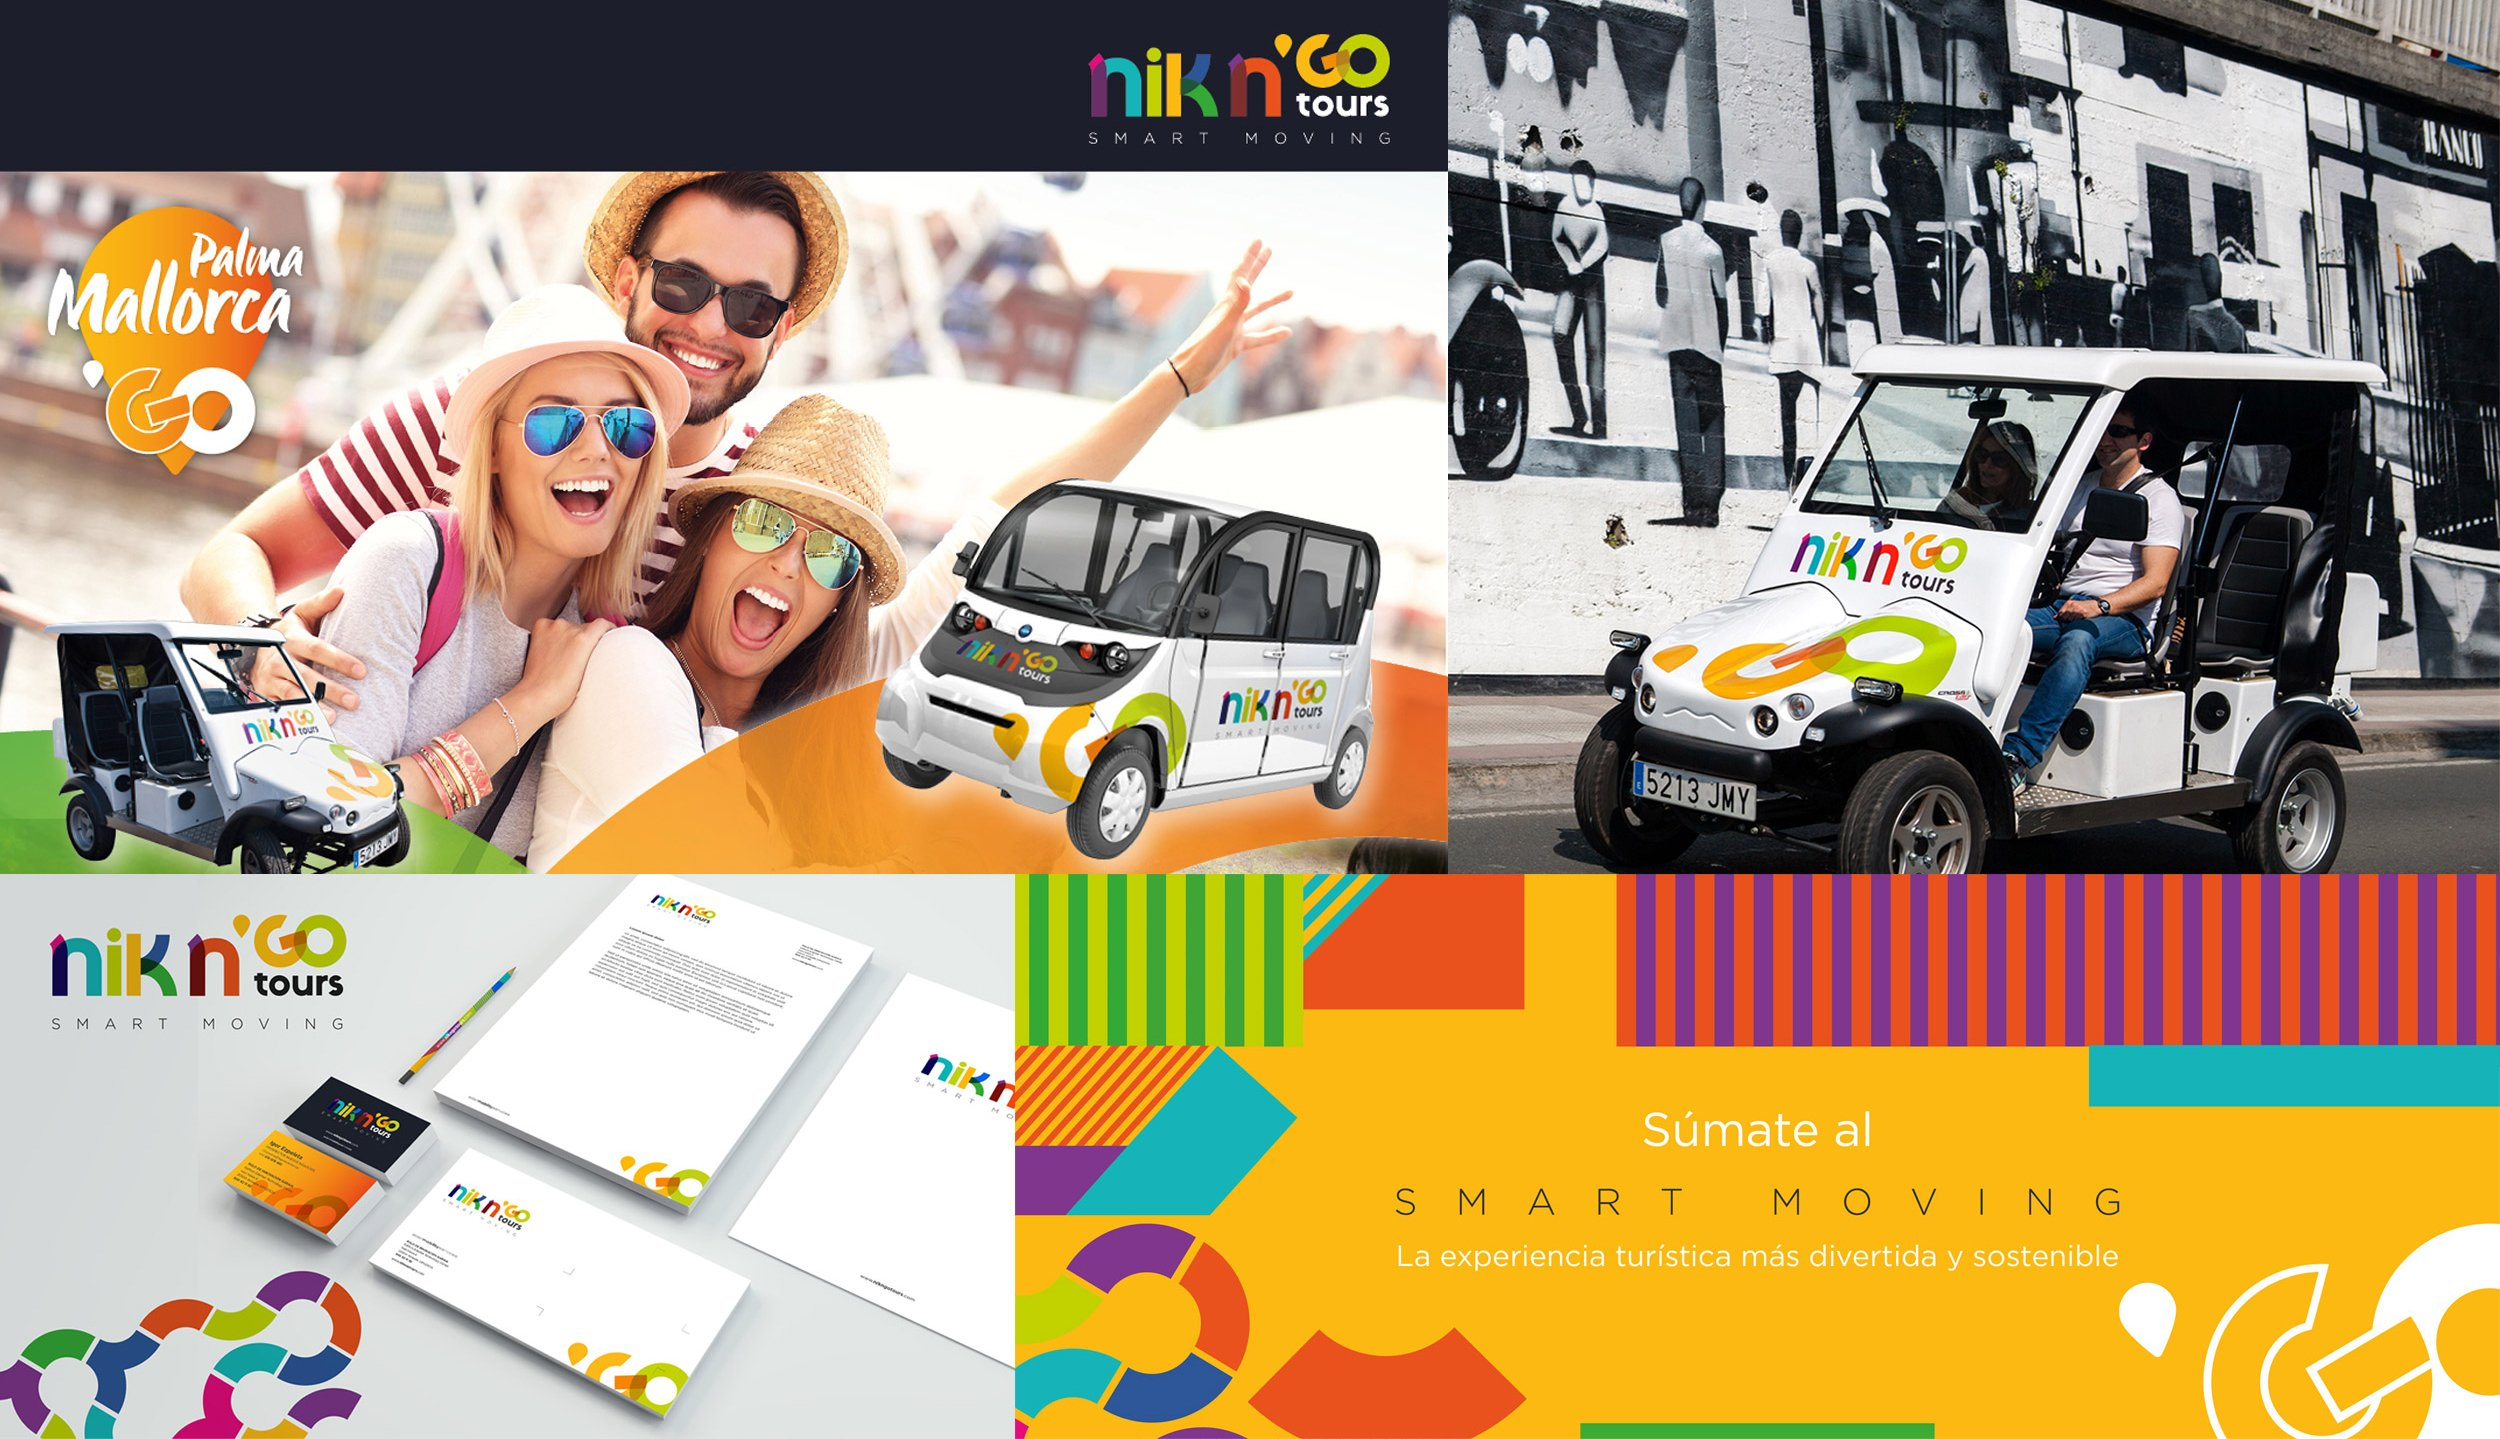 Nikngotours service launching